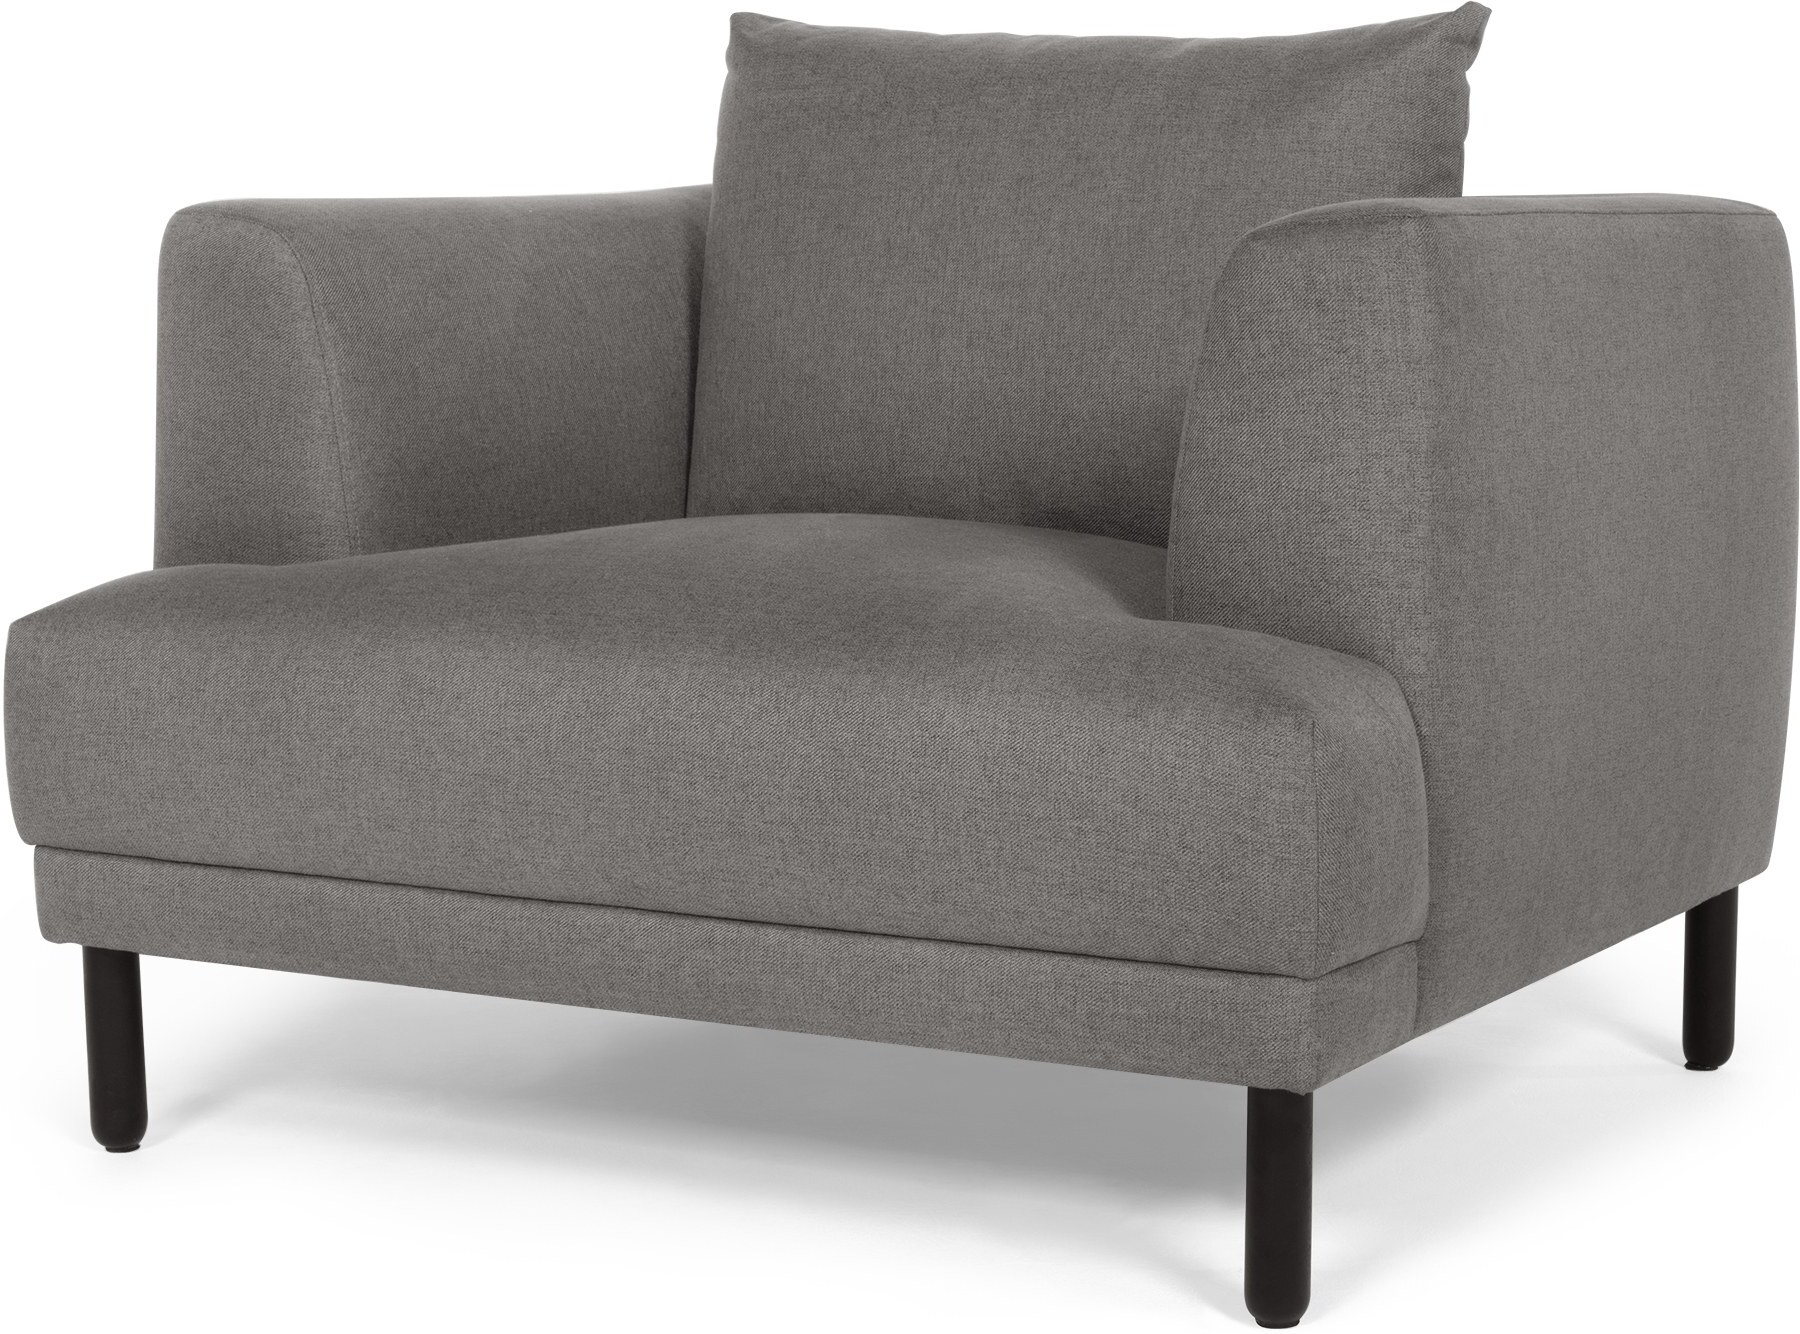 Bowery Armchair, Fossil Grey